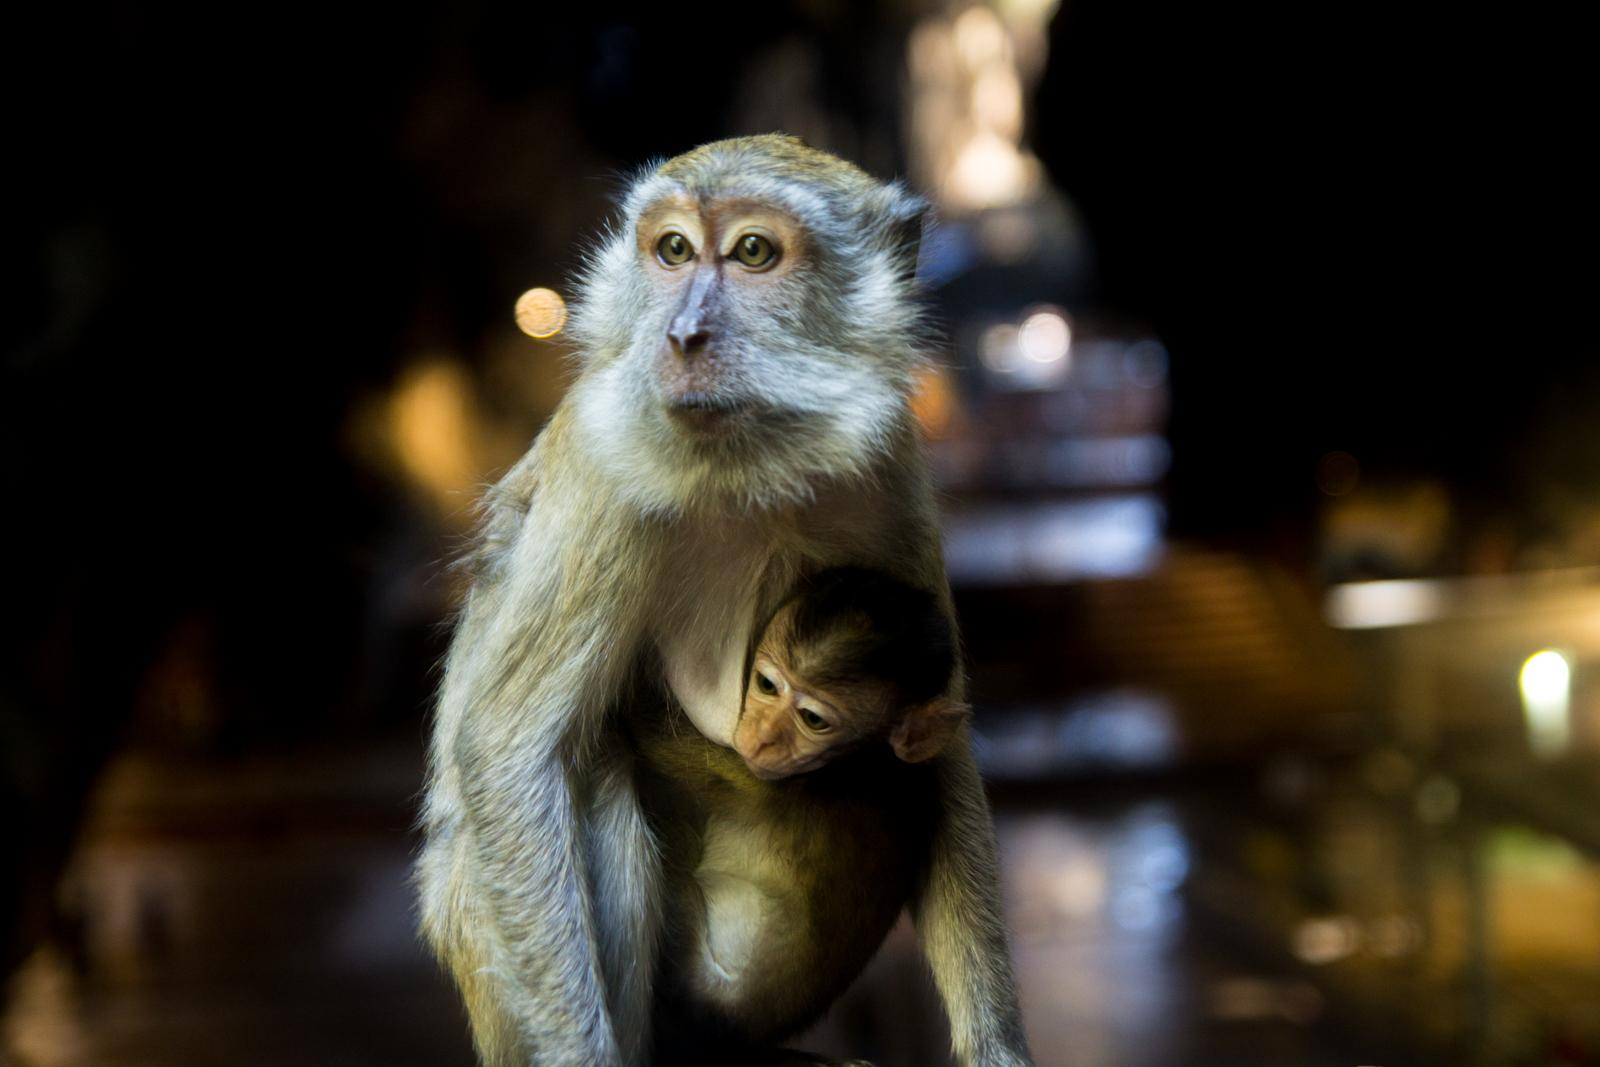 Monkeys at Batu Caves #2